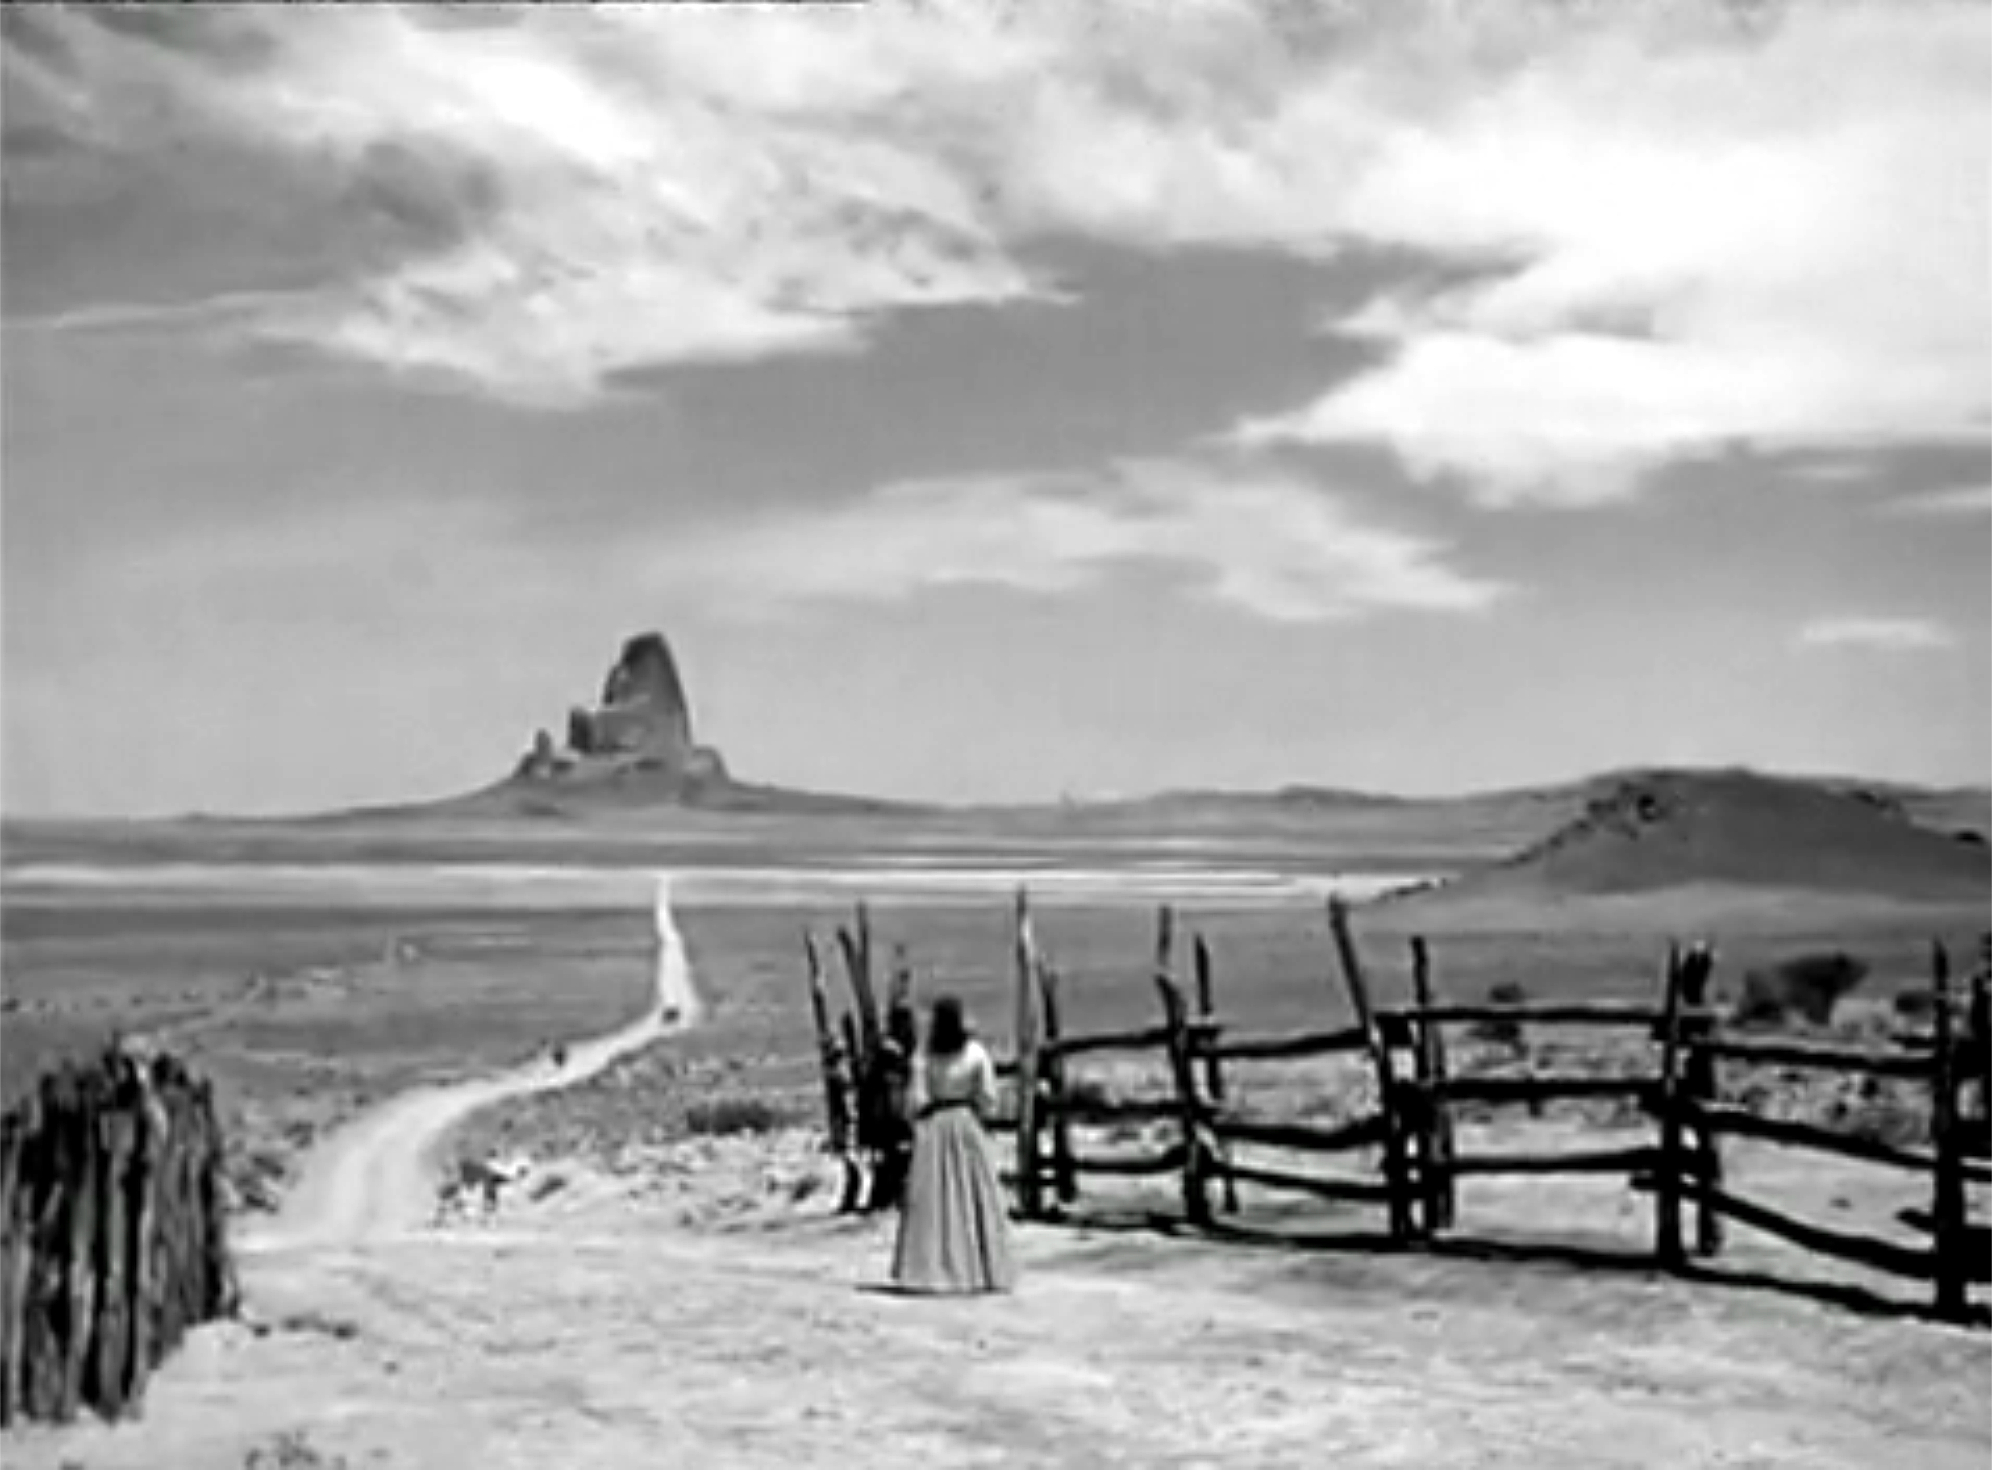 a review of my darling clementine a movie by john ford New version will swap the 19th-century frontier setting of john ford's celebrated  philip french's classic dvd my darling clementine review  john steinbeck 's.